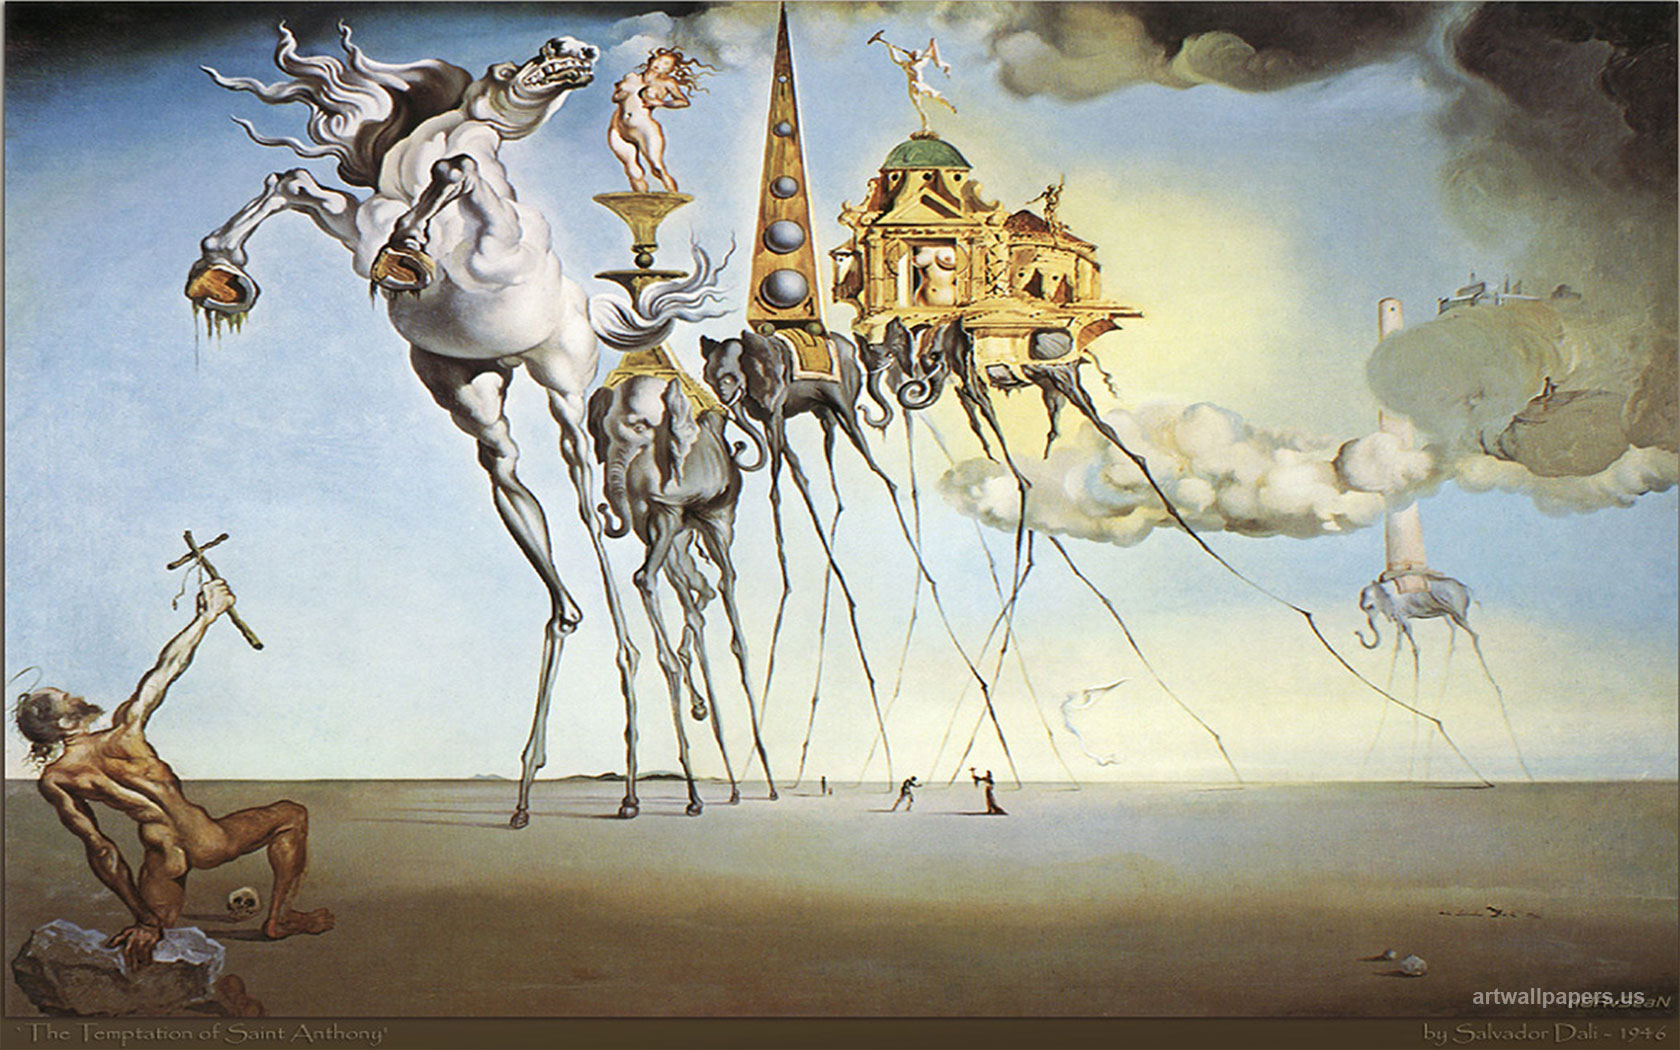 concept artist role in surrealism Concept art of fantasy type of surreal environment with a dark tower floating in the space with its cracked pieces while a glowing white figure walking around like a dream scenery.